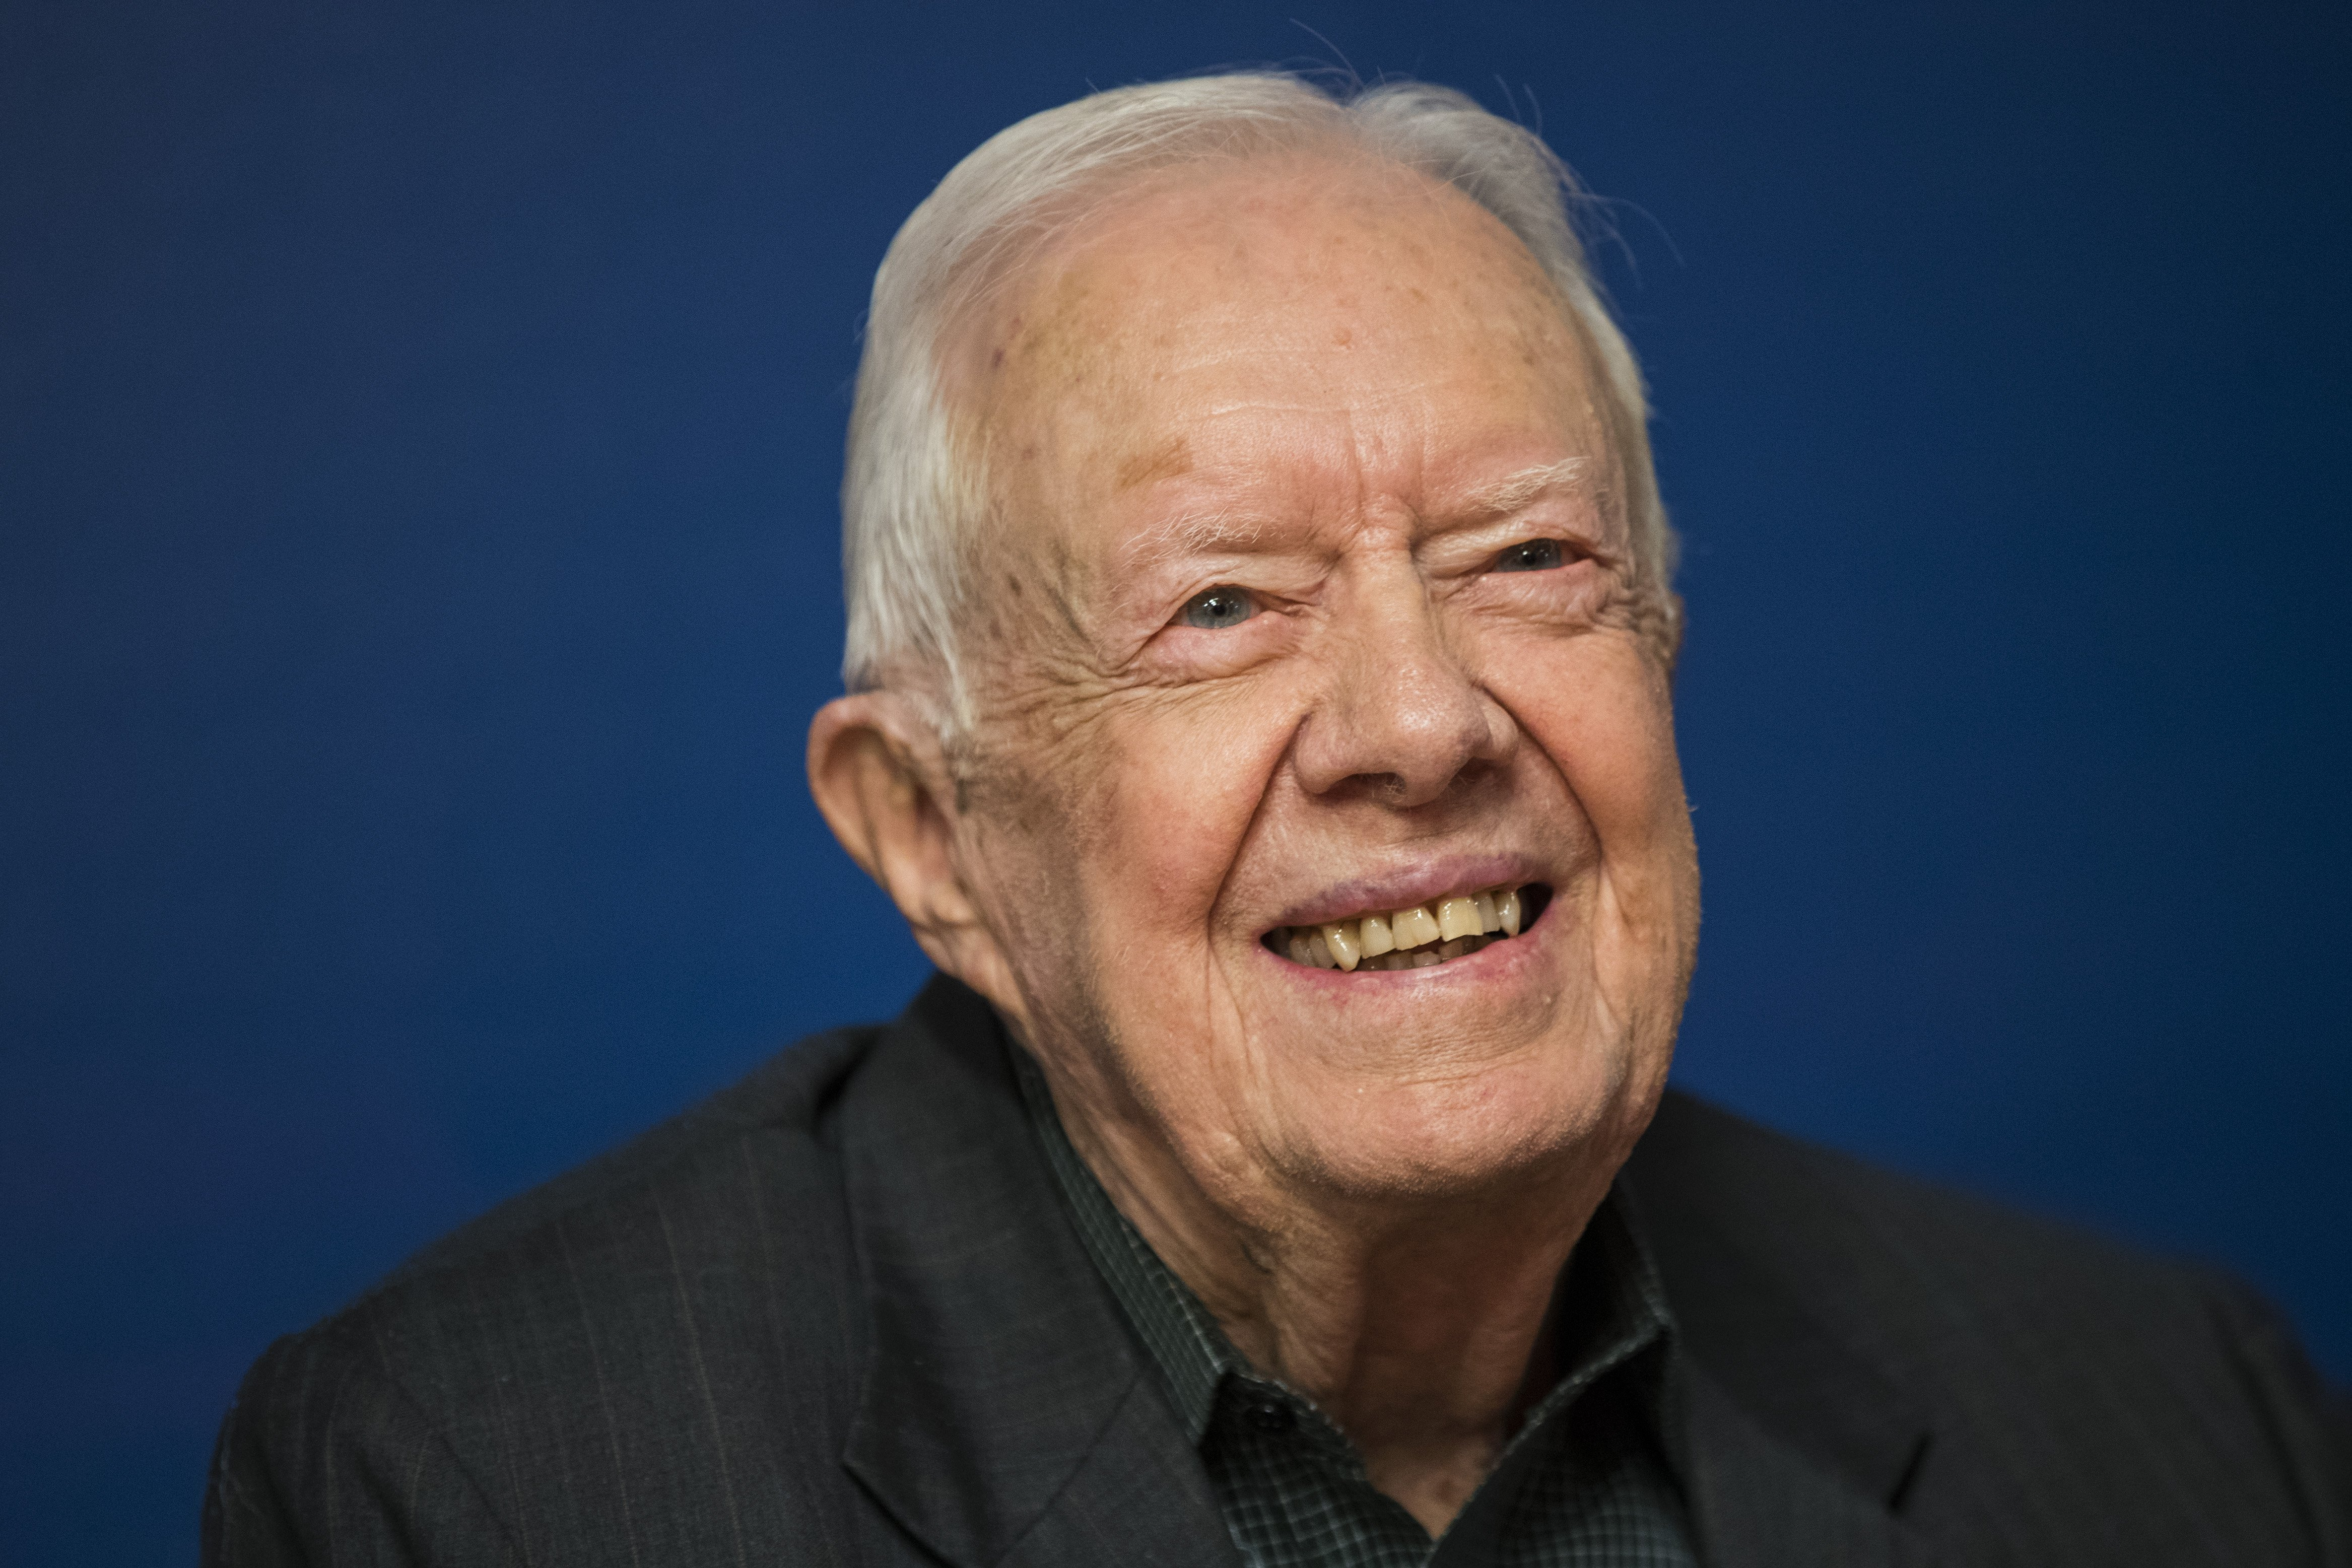 Jimmy Carter smiles during a book signing event for his new book 'Faith: A Journey For All' at Barnes & Noble bookstore in Midtown Manhattan, March 26, 2018, in New York City. | Source: Getty Images.